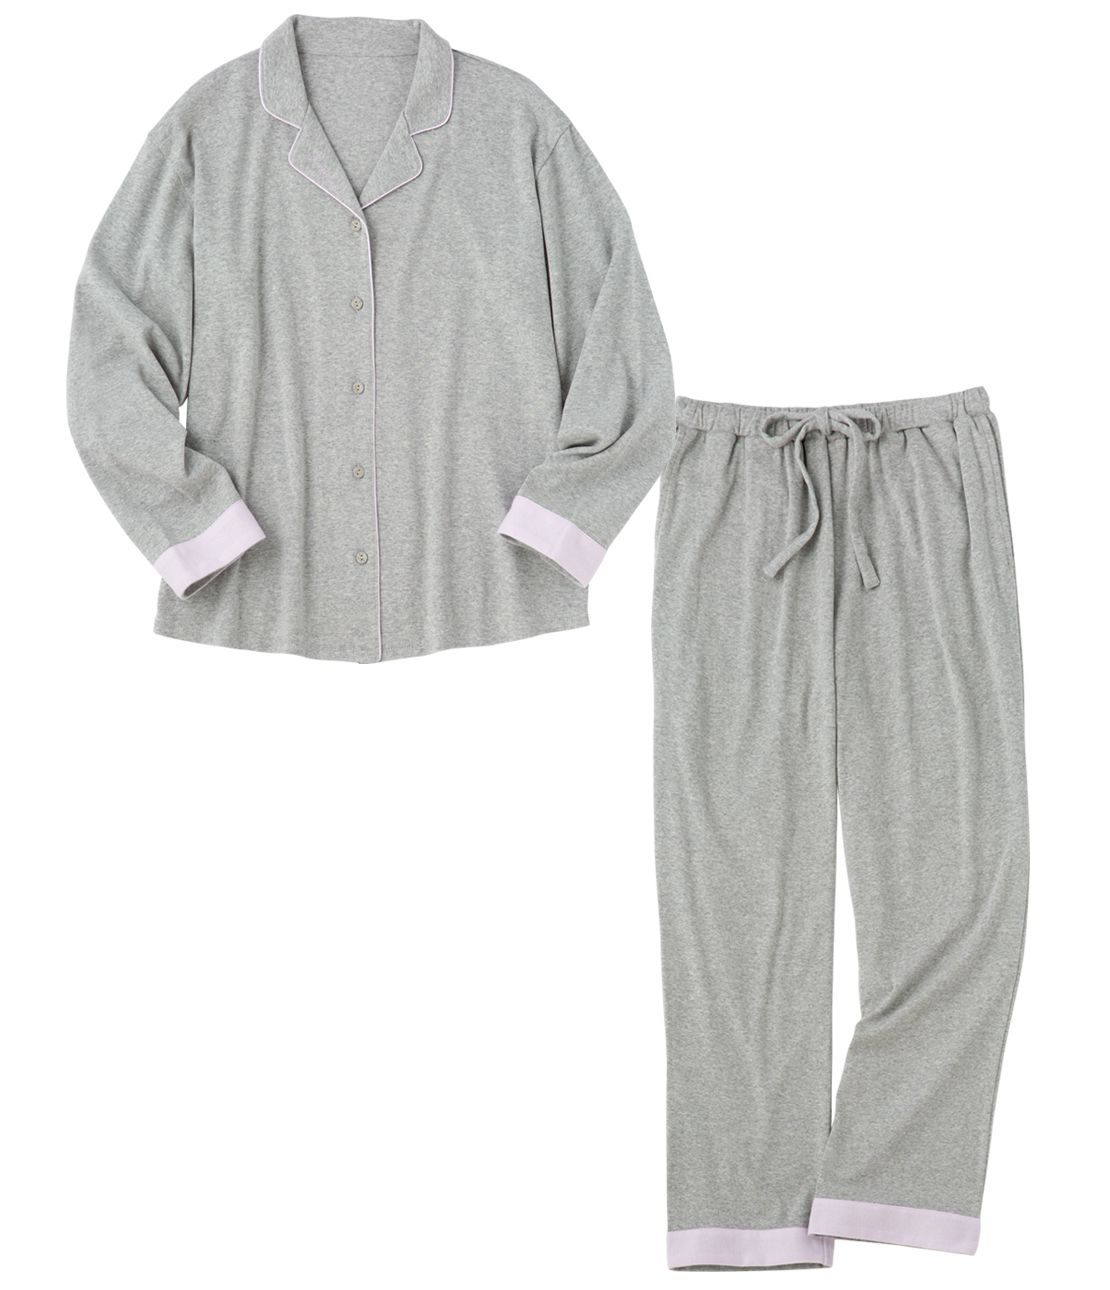 Soft cotton jersey shirt pajamas